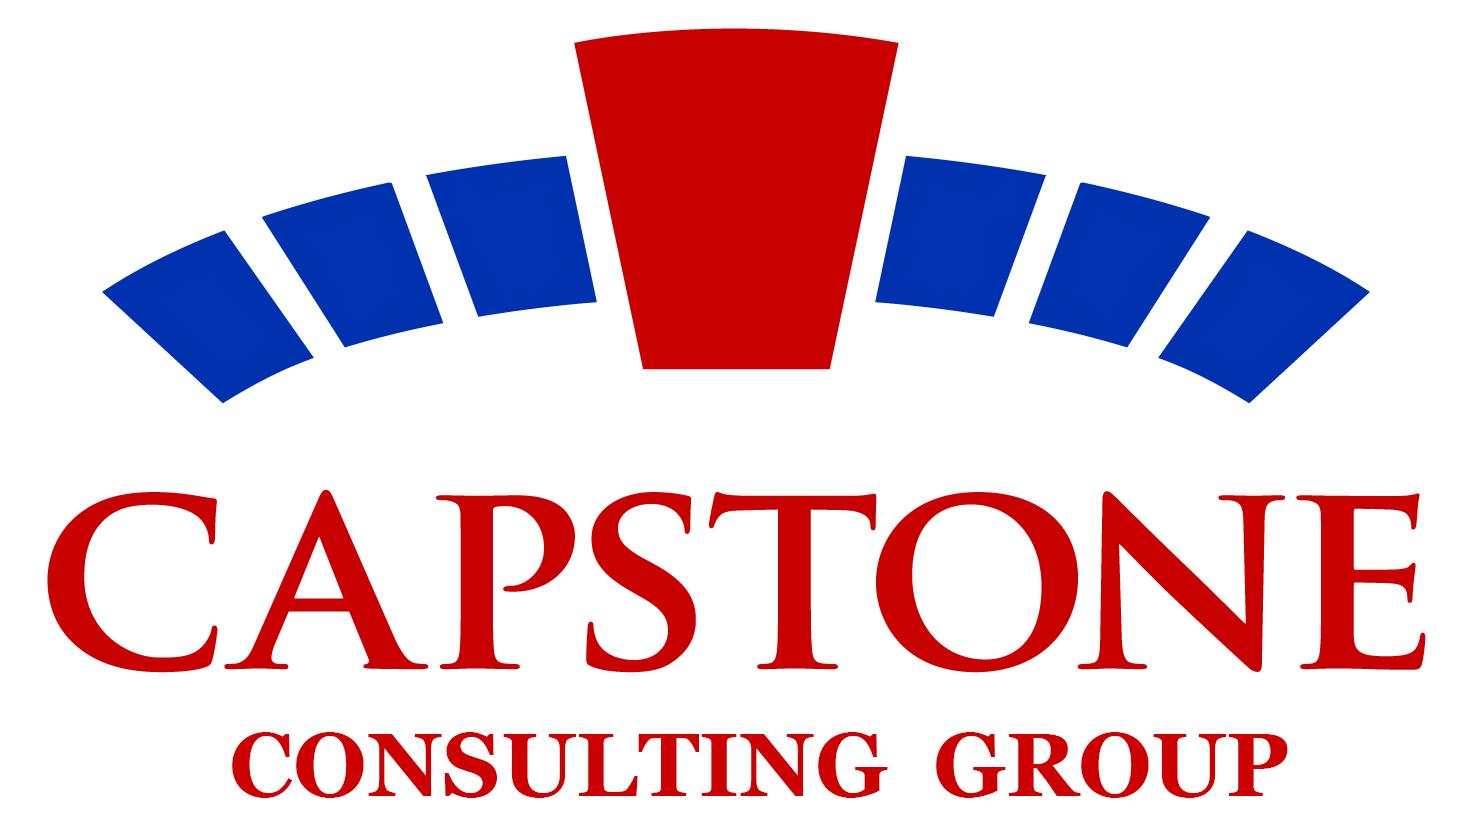 Capstone Consulting Group